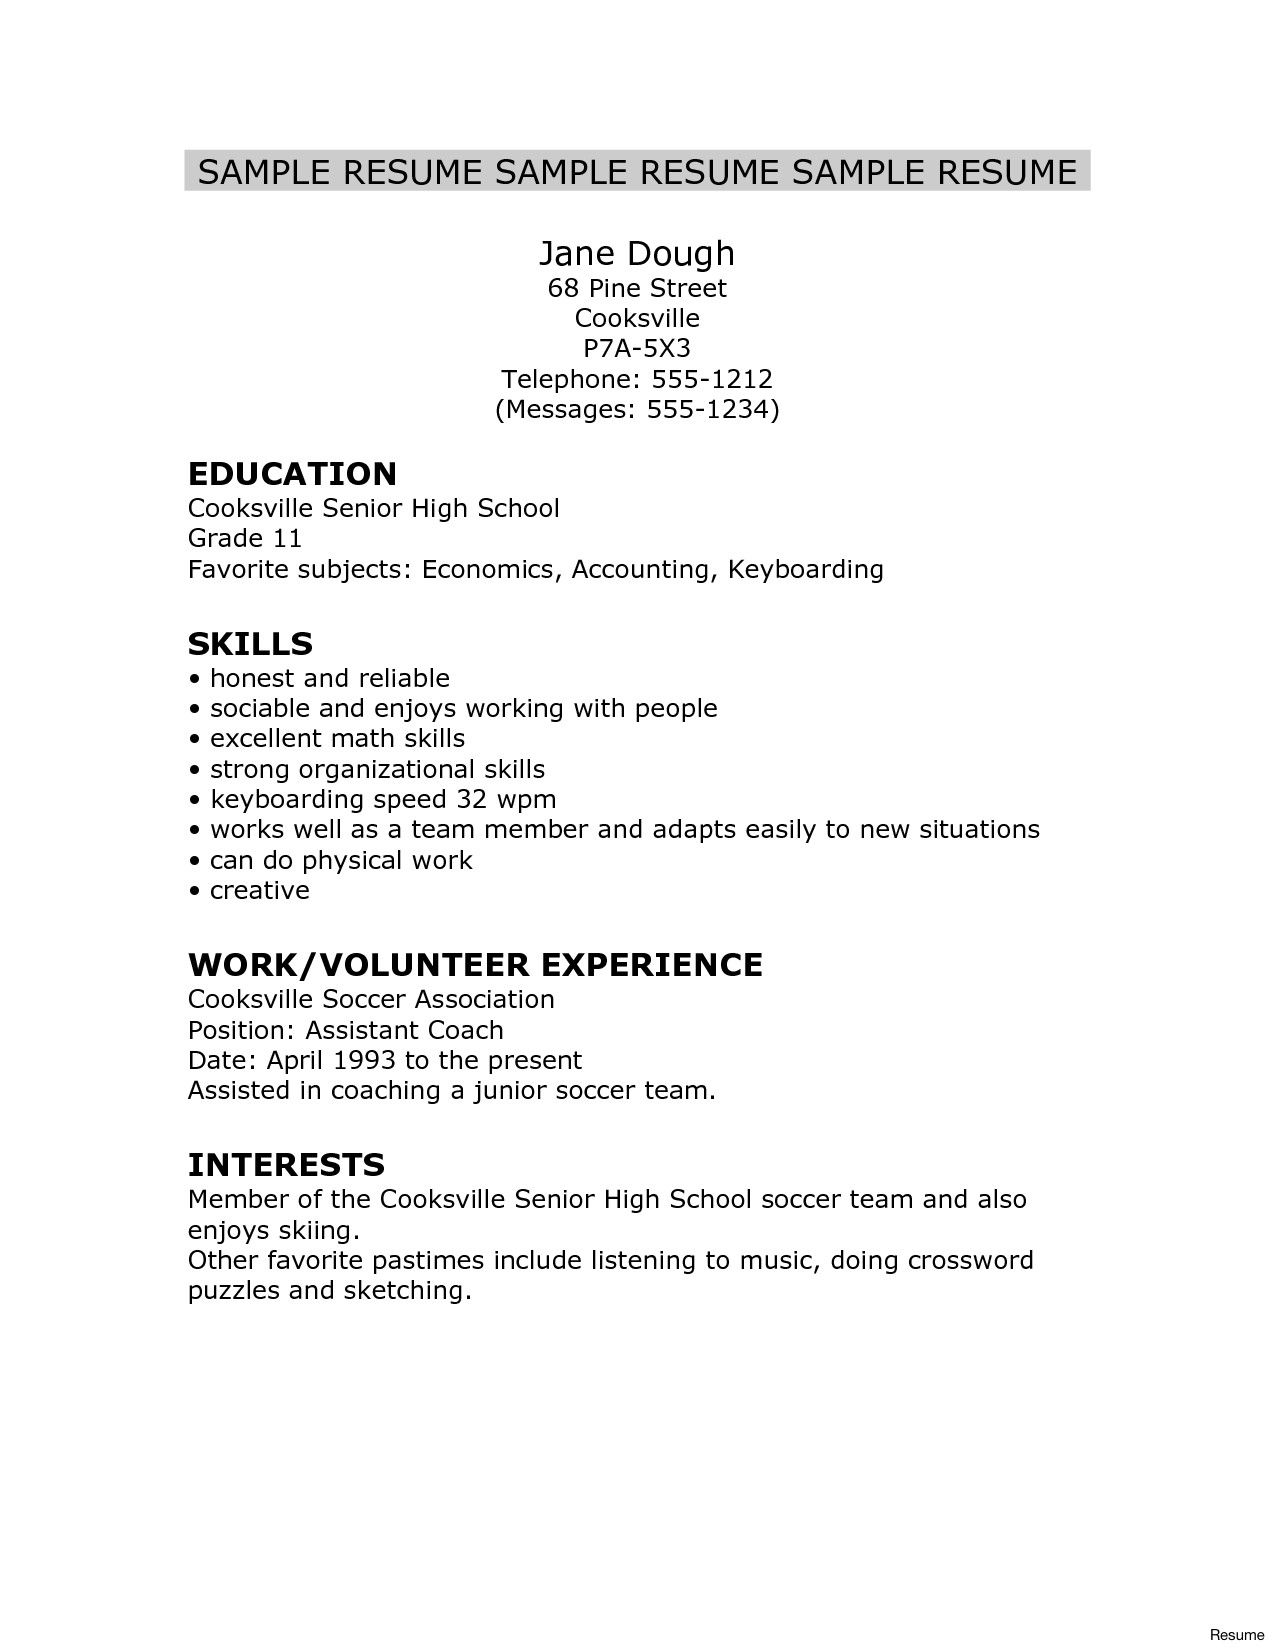 34++ Skills list for high school resume Resume Examples